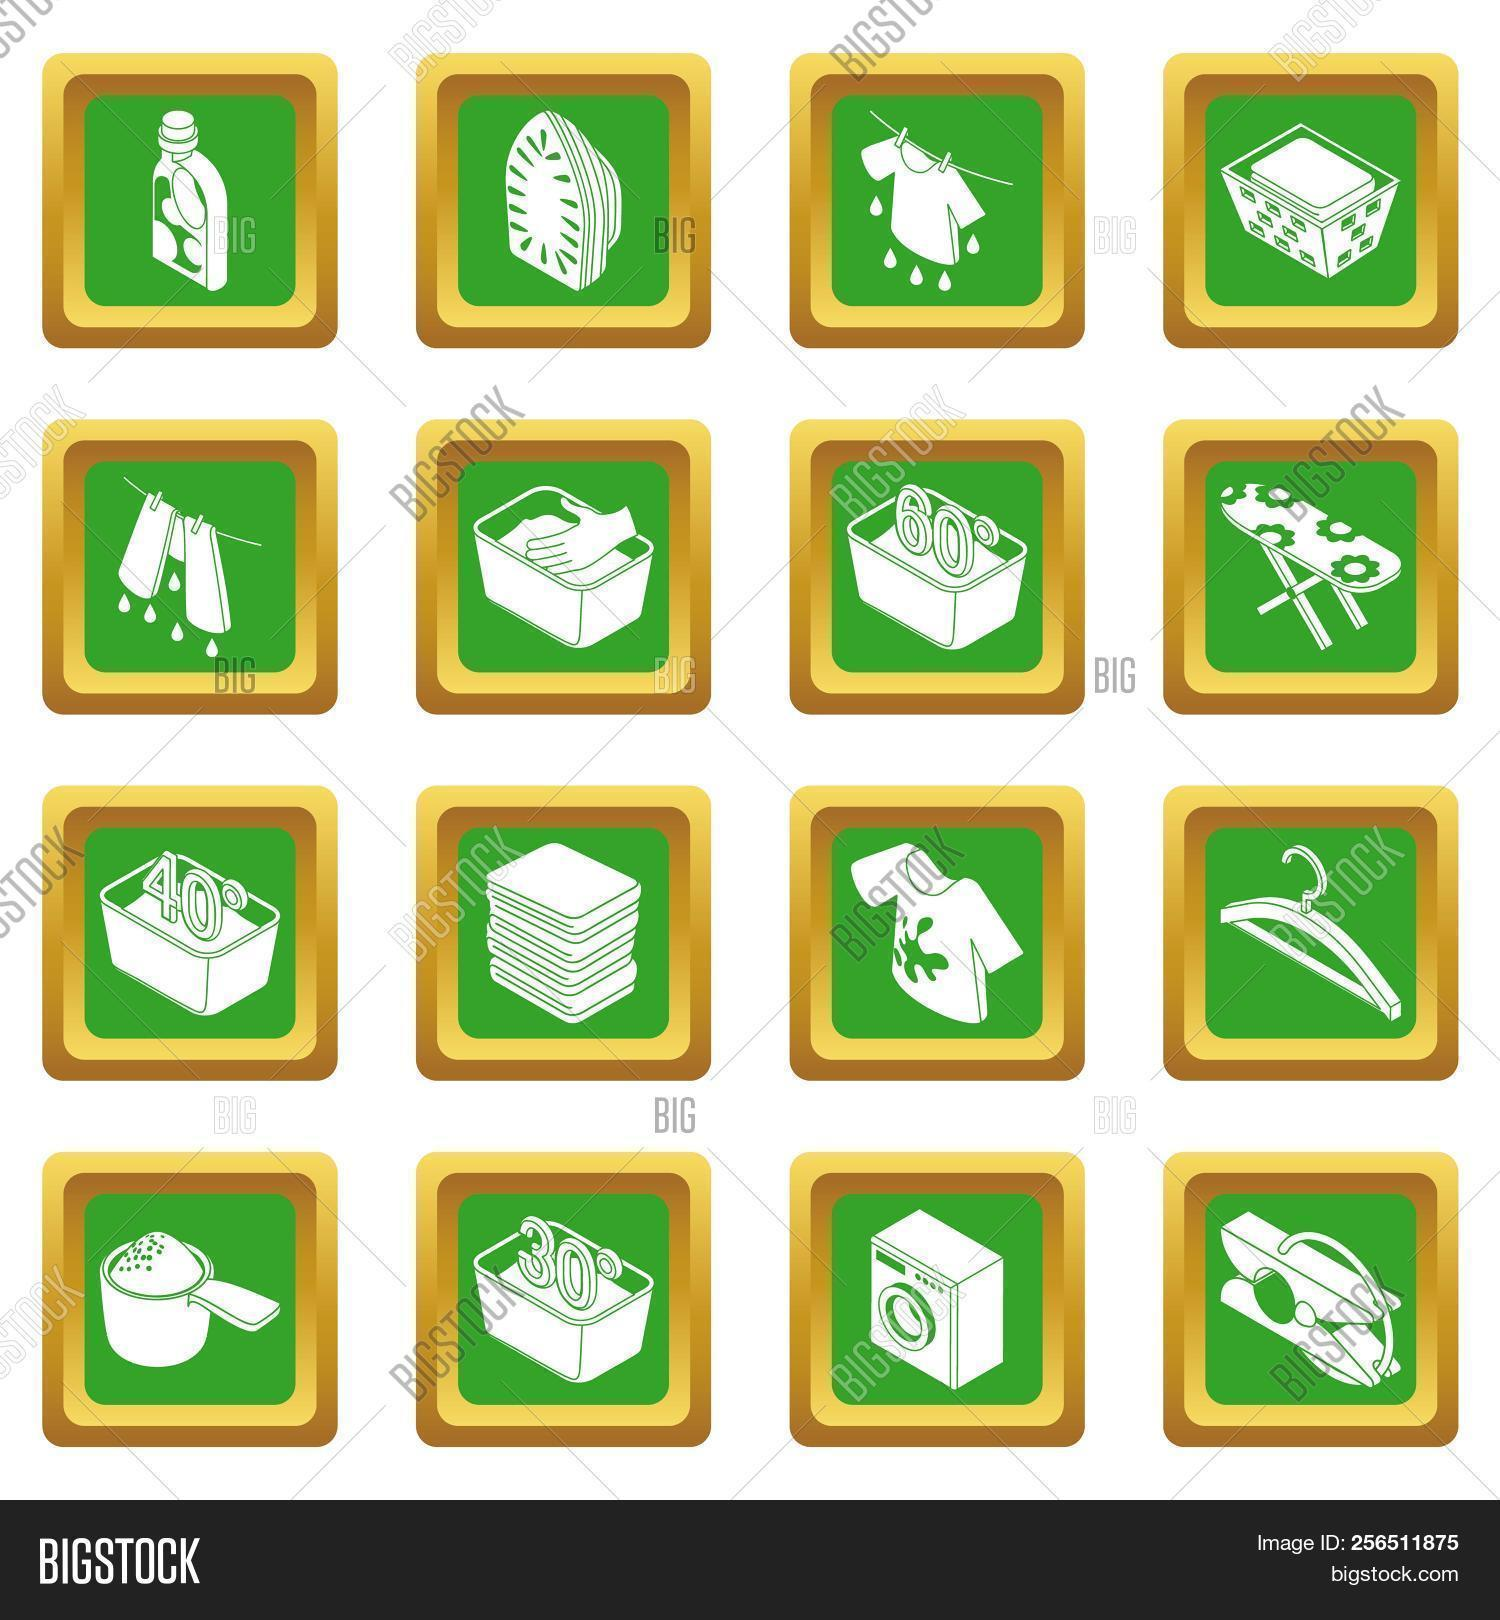 3d,bar,basin,basket,board,bottle,clean,cleaner,cleaning,clothes,clothespin,collection,design,detergent,dirt,dryer,equipment,glove,green,hanger,icon,illustration,iron,ironing,isolated,isometric,laundry,machine,pictogram,recycling,set,shampoo,shirt,sign,simple,soap,spray,symbol,t-shirt,temperature,thermometer,towel,trembler,wash,washer,washing,water